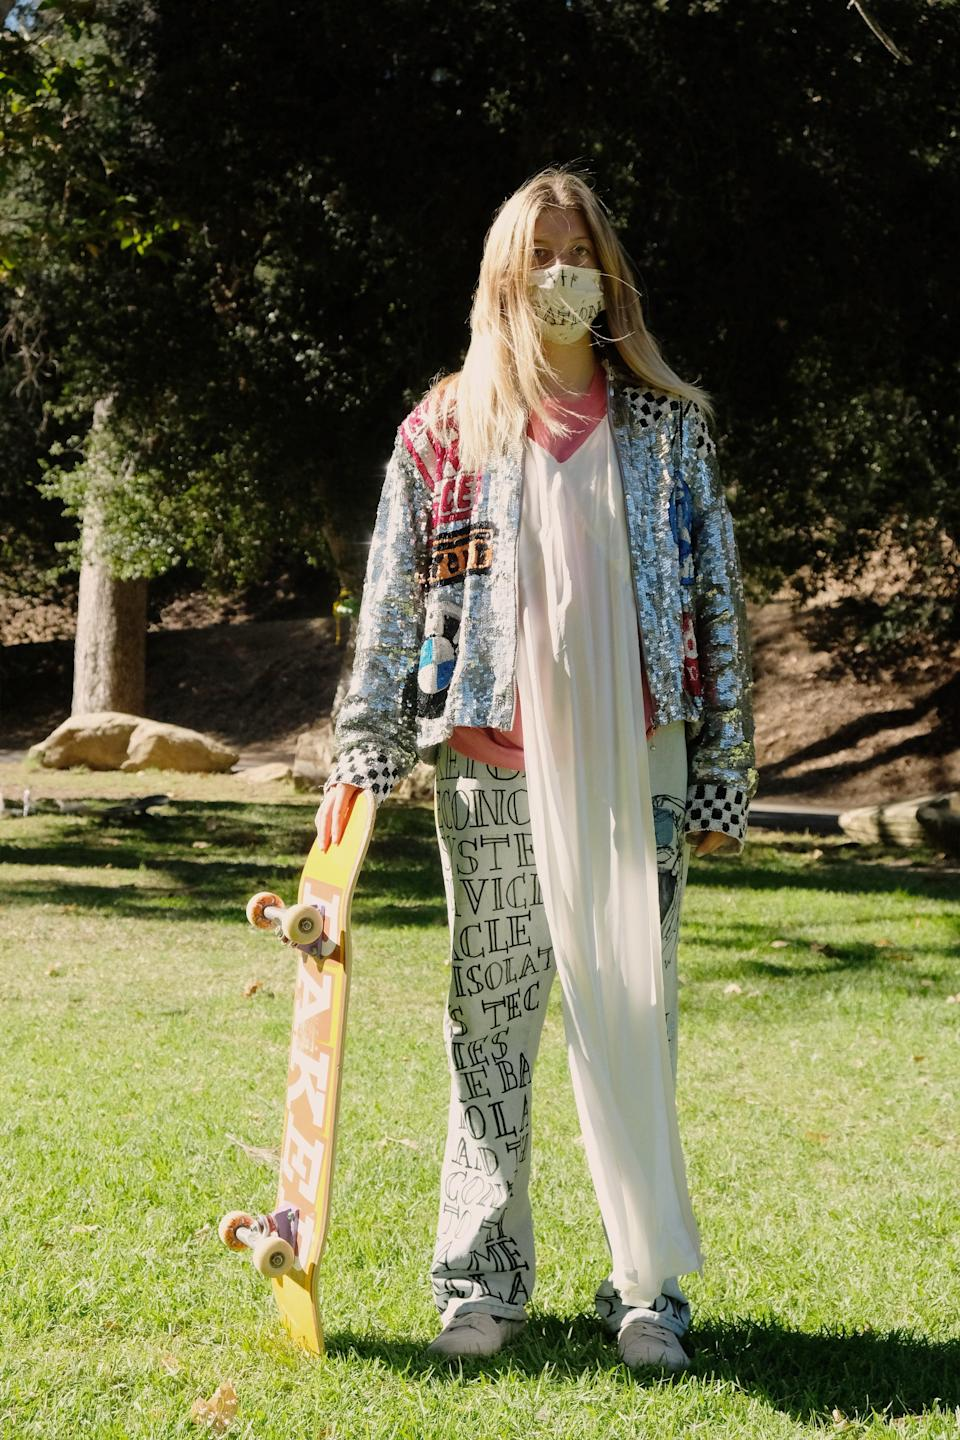 """<h2>Imitation of Christ</h2><br>For its long-awaited return to NYFW, LA-based brand Imitation of Christ highlighted the women of skateboarding, a sport typically dominated by men. In the campaign video, female skaters can be seen riding and performing tricks throughout the California metropolis, all the while wearing IOC garb and masks, thus proving that you can, in fact, <a href=""""https://www.refinery29.com/en-gb/2020/07/9932275/breathable-face-mask-for-running"""" rel=""""nofollow noopener"""" target=""""_blank"""" data-ylk=""""slk:wear a mask while you exercise"""" class=""""link rapid-noclick-resp"""">wear a mask while you exercise</a>. <span class=""""copyright"""">Photo Courtesy of Imitation of Christ.</span>"""